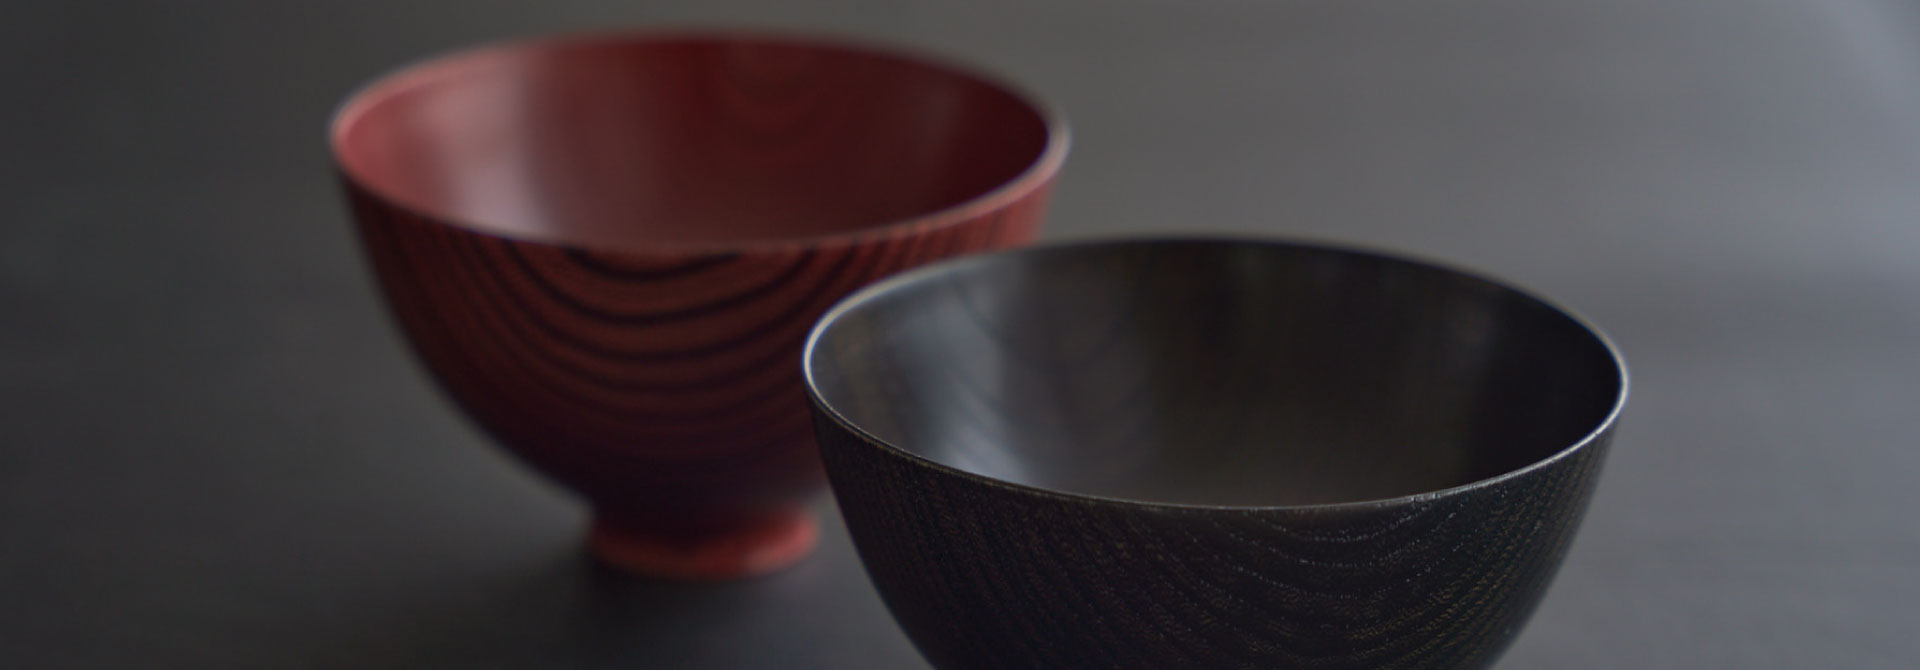 Yamanaka lacquerware, one of traditional crafts in Japan